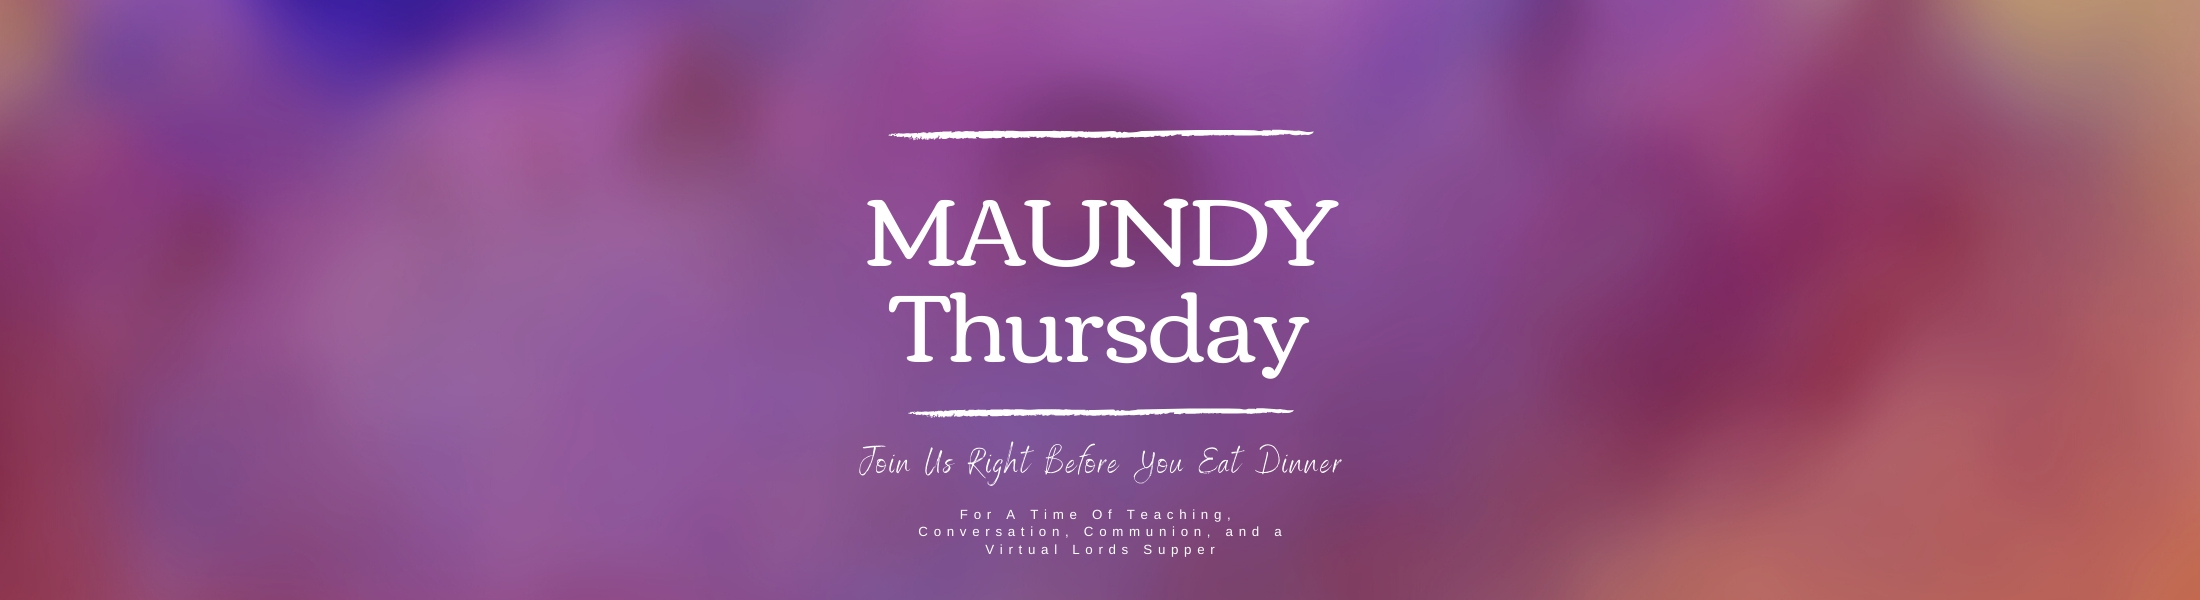 Join Us April 9th For Maundy Thursday